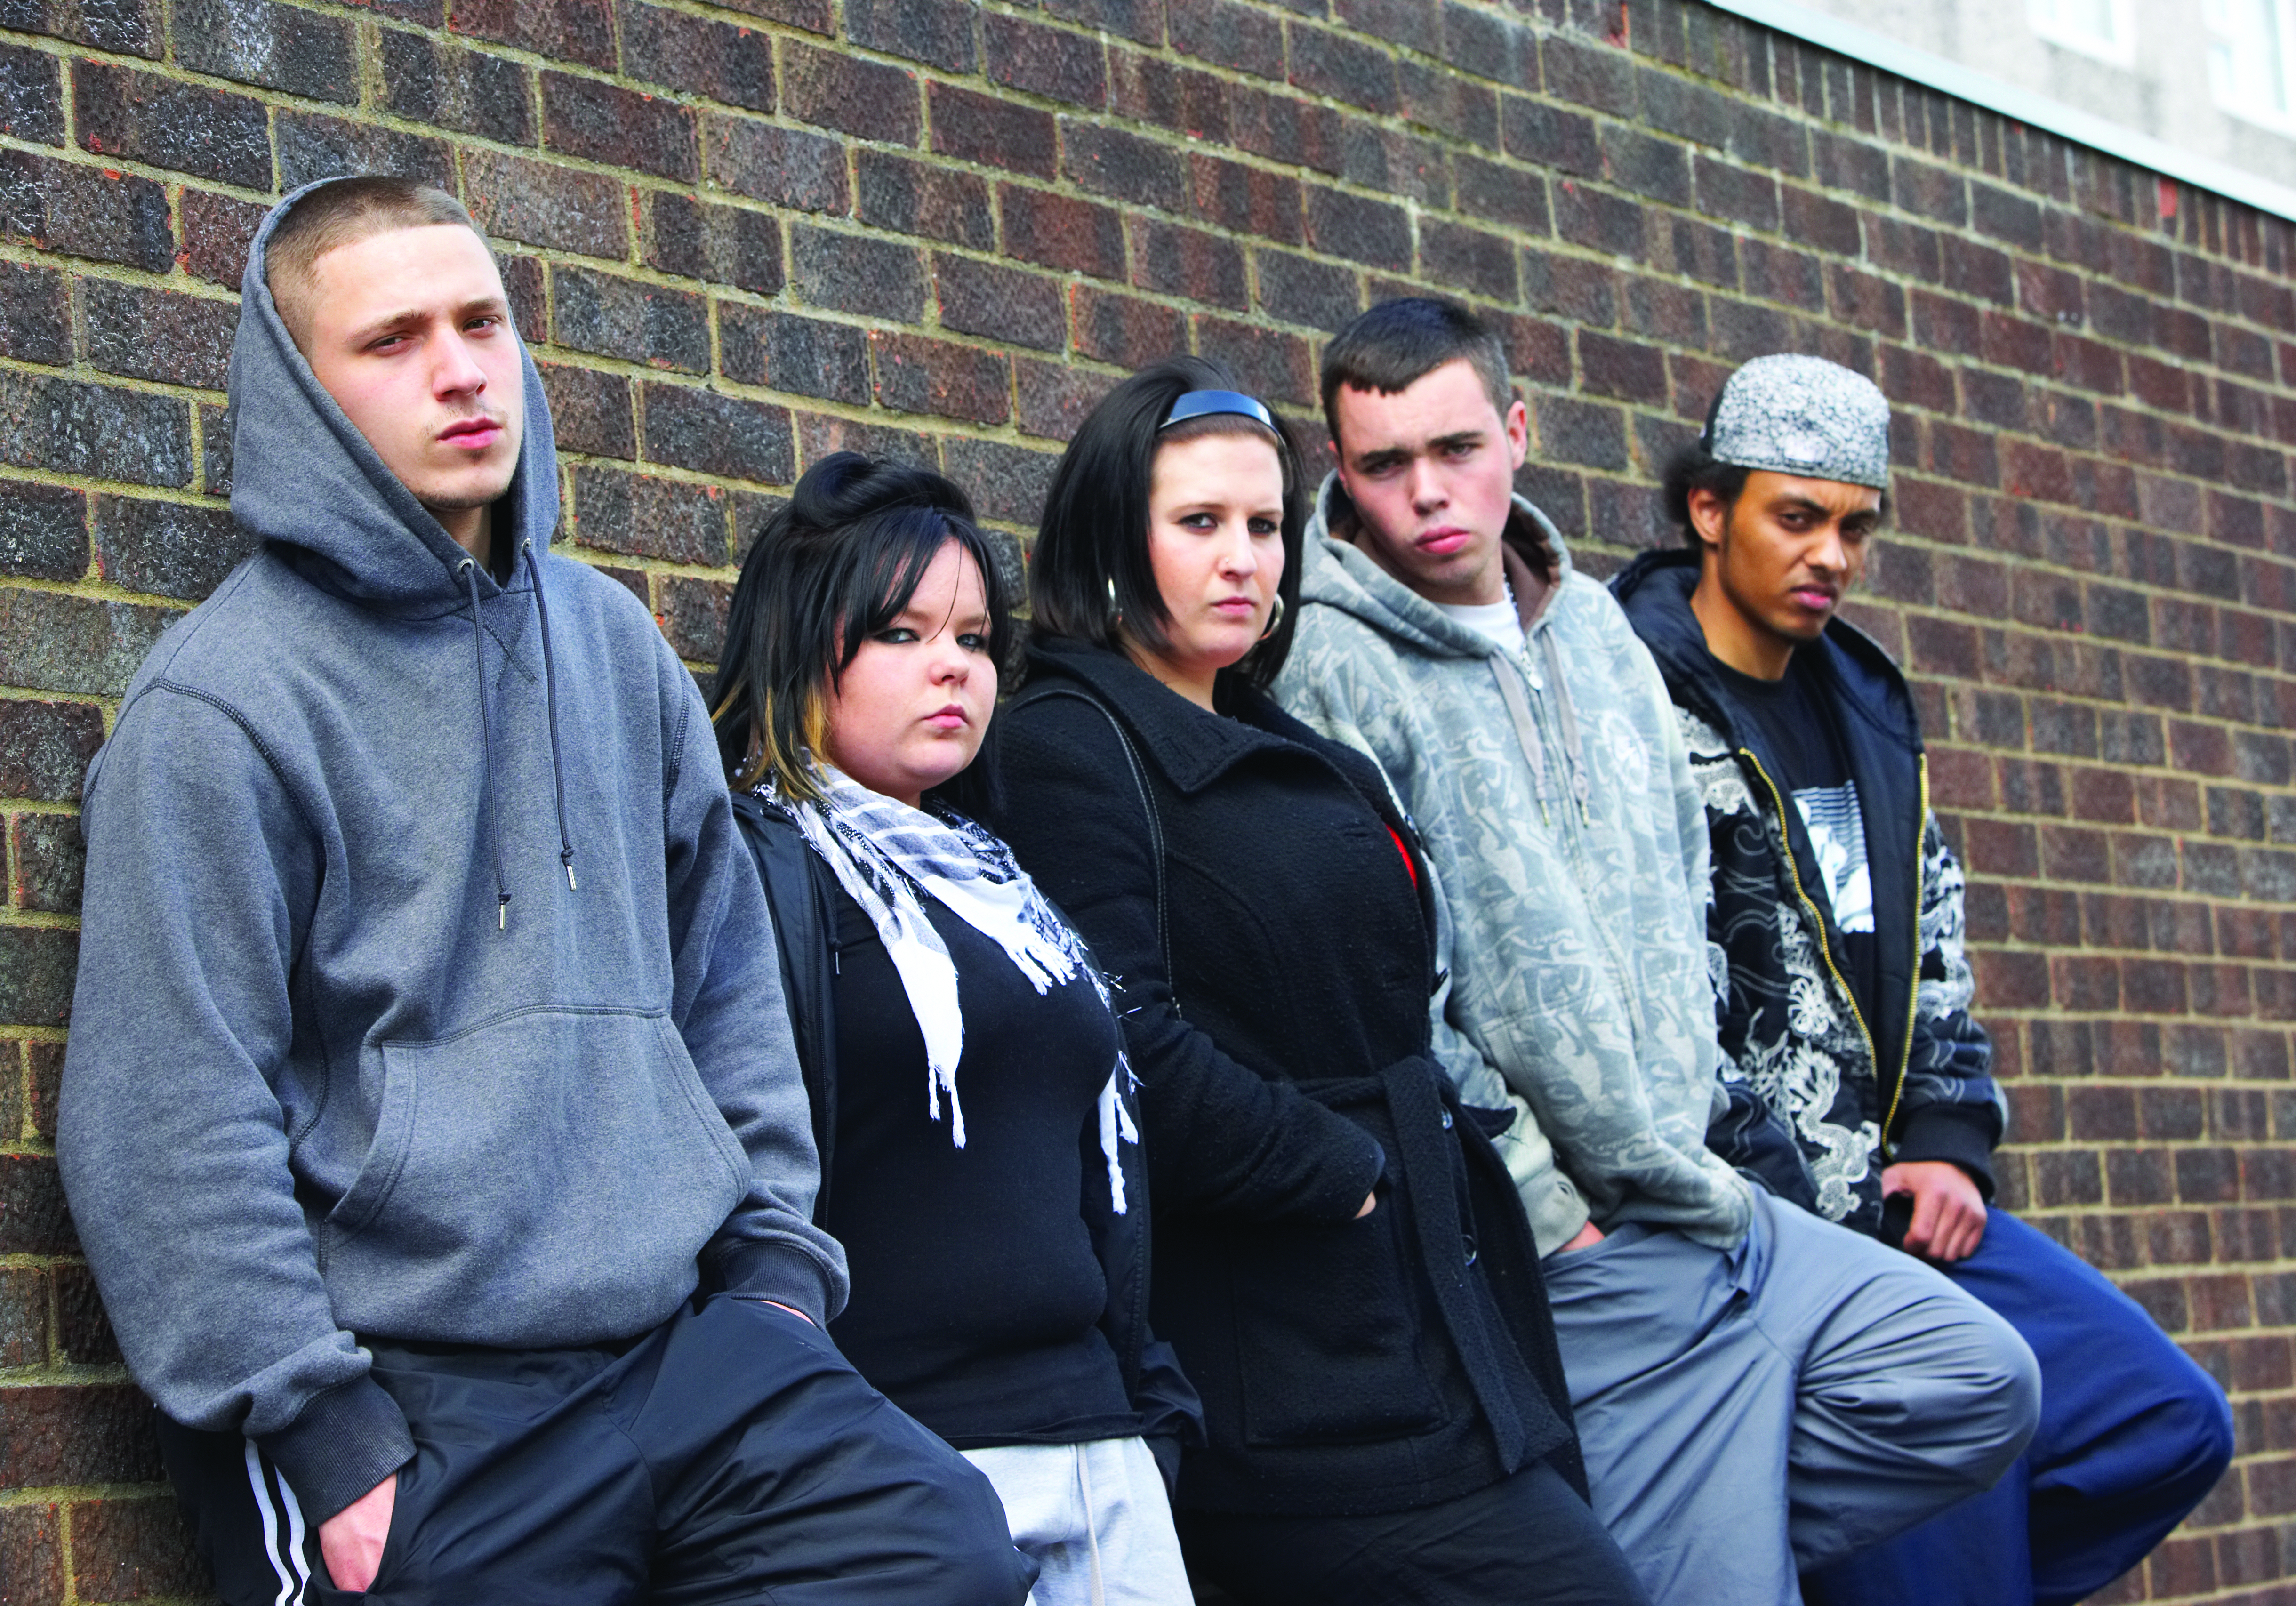 Female Gang Membership: Current Trends and Future Directions